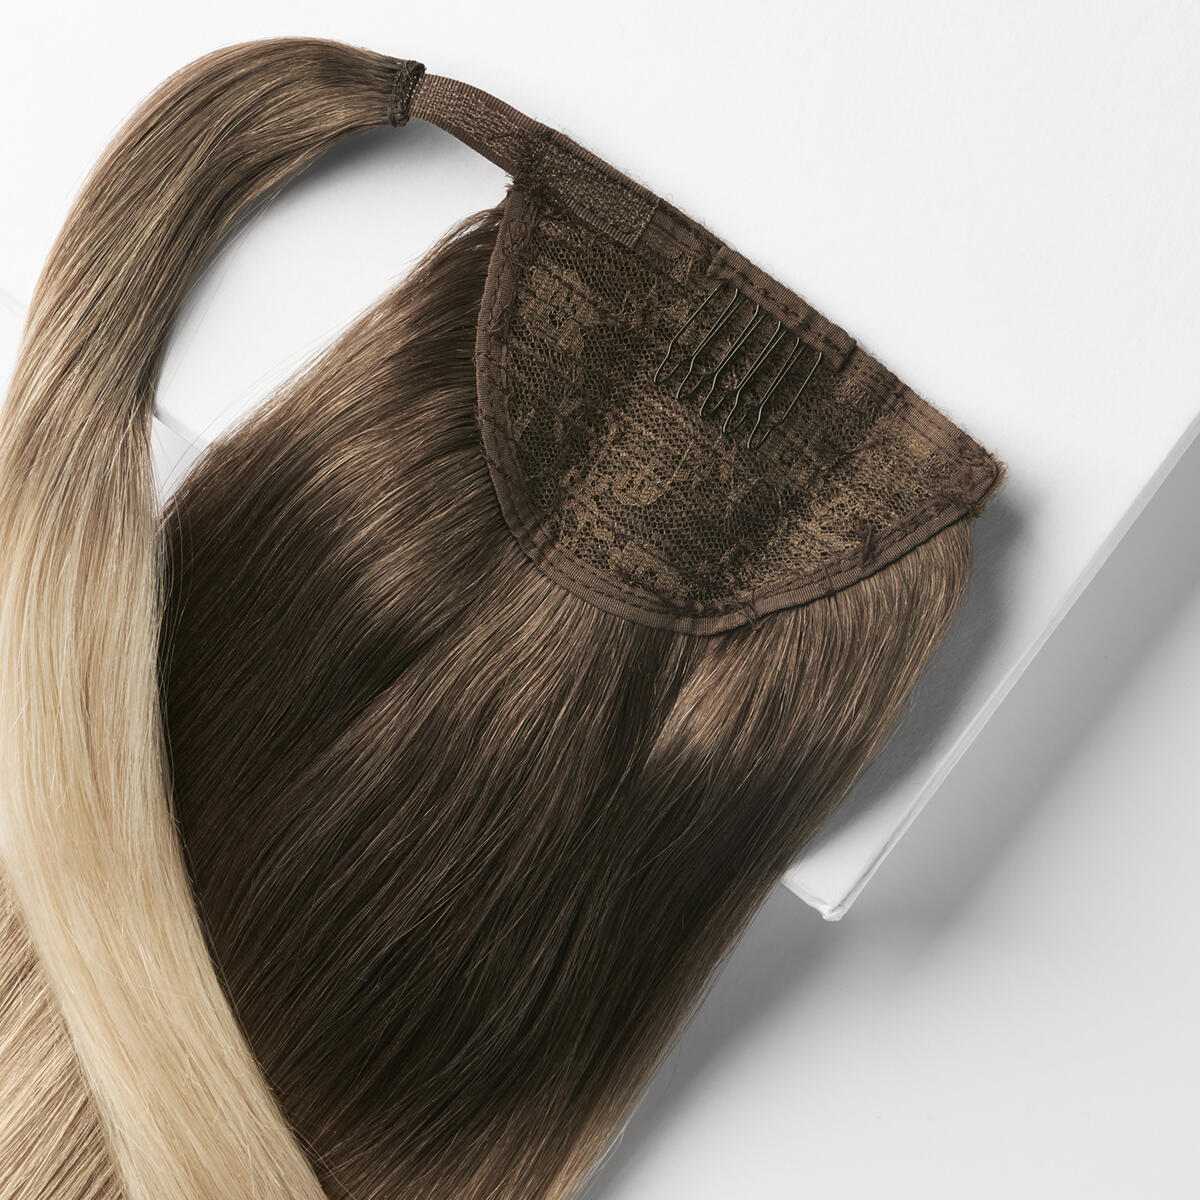 Clip-in Ponytail O2.6/8.0 Dark Ash Blond Ombre 40 cm